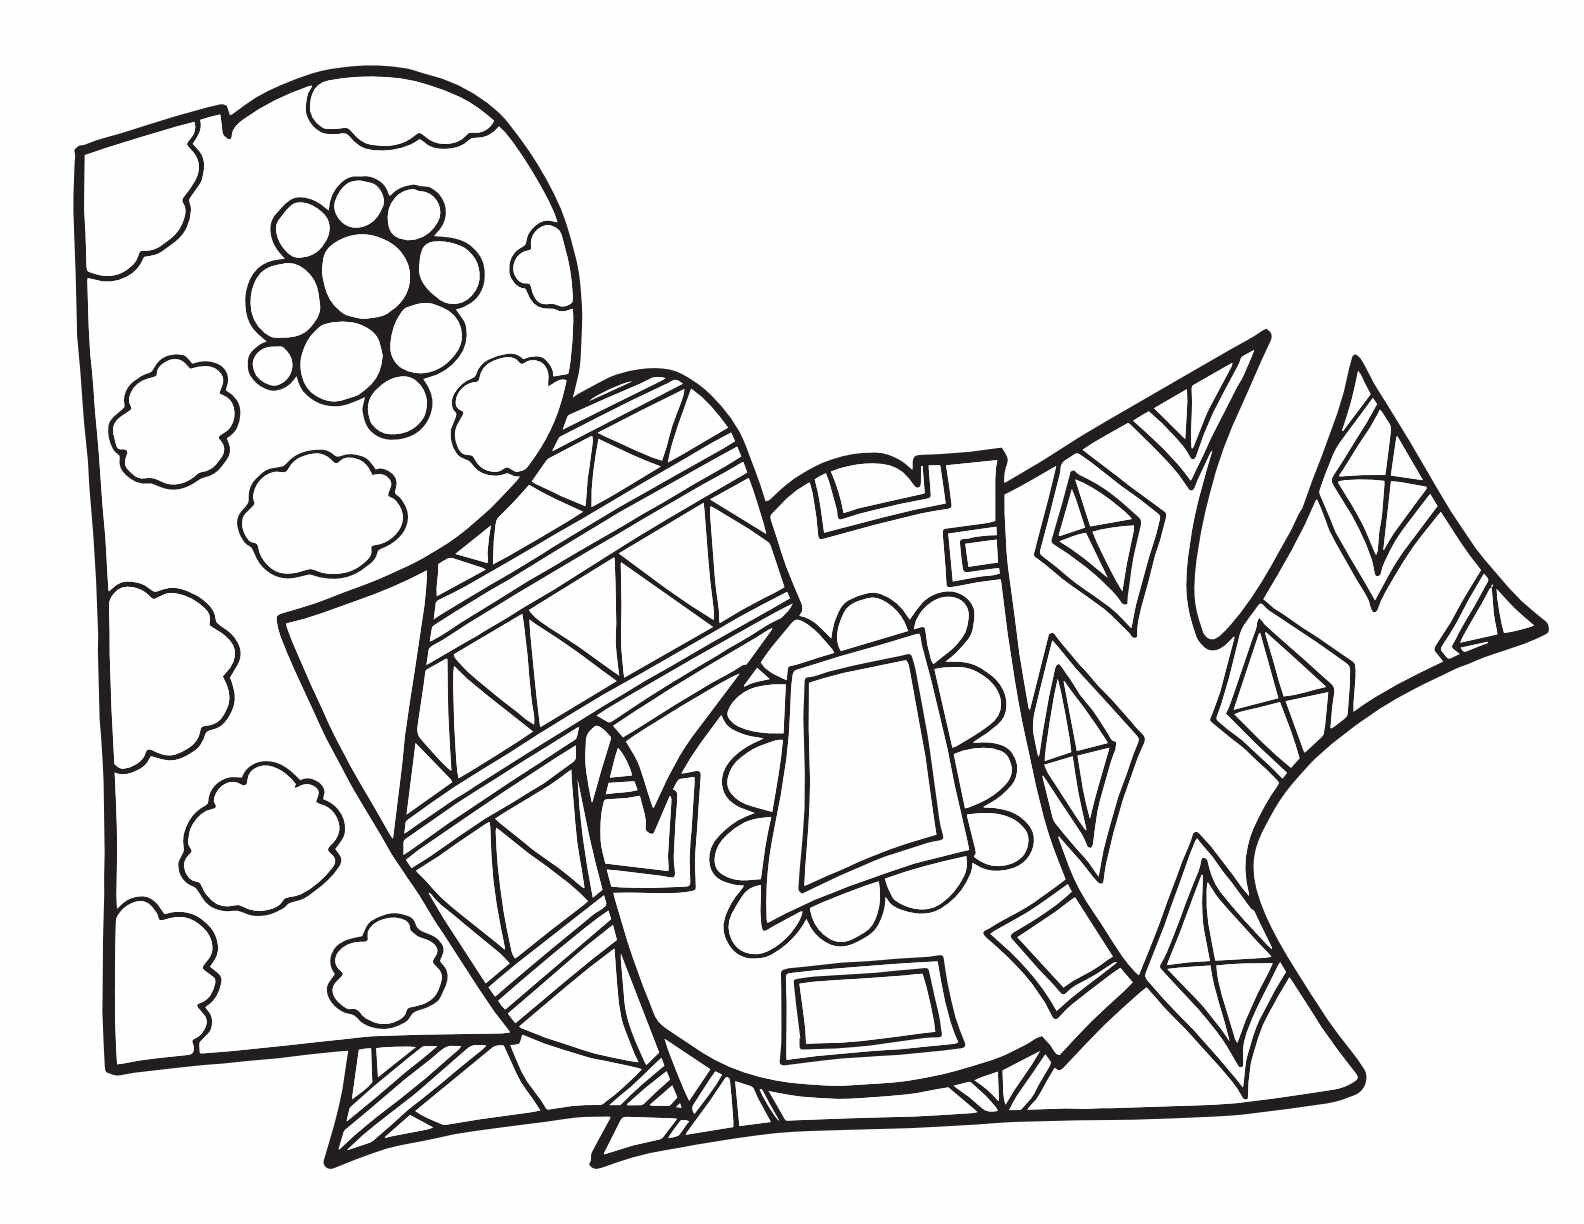 Children Praying Coloring Pages Children Praying Coloring Pages ...   773x1000